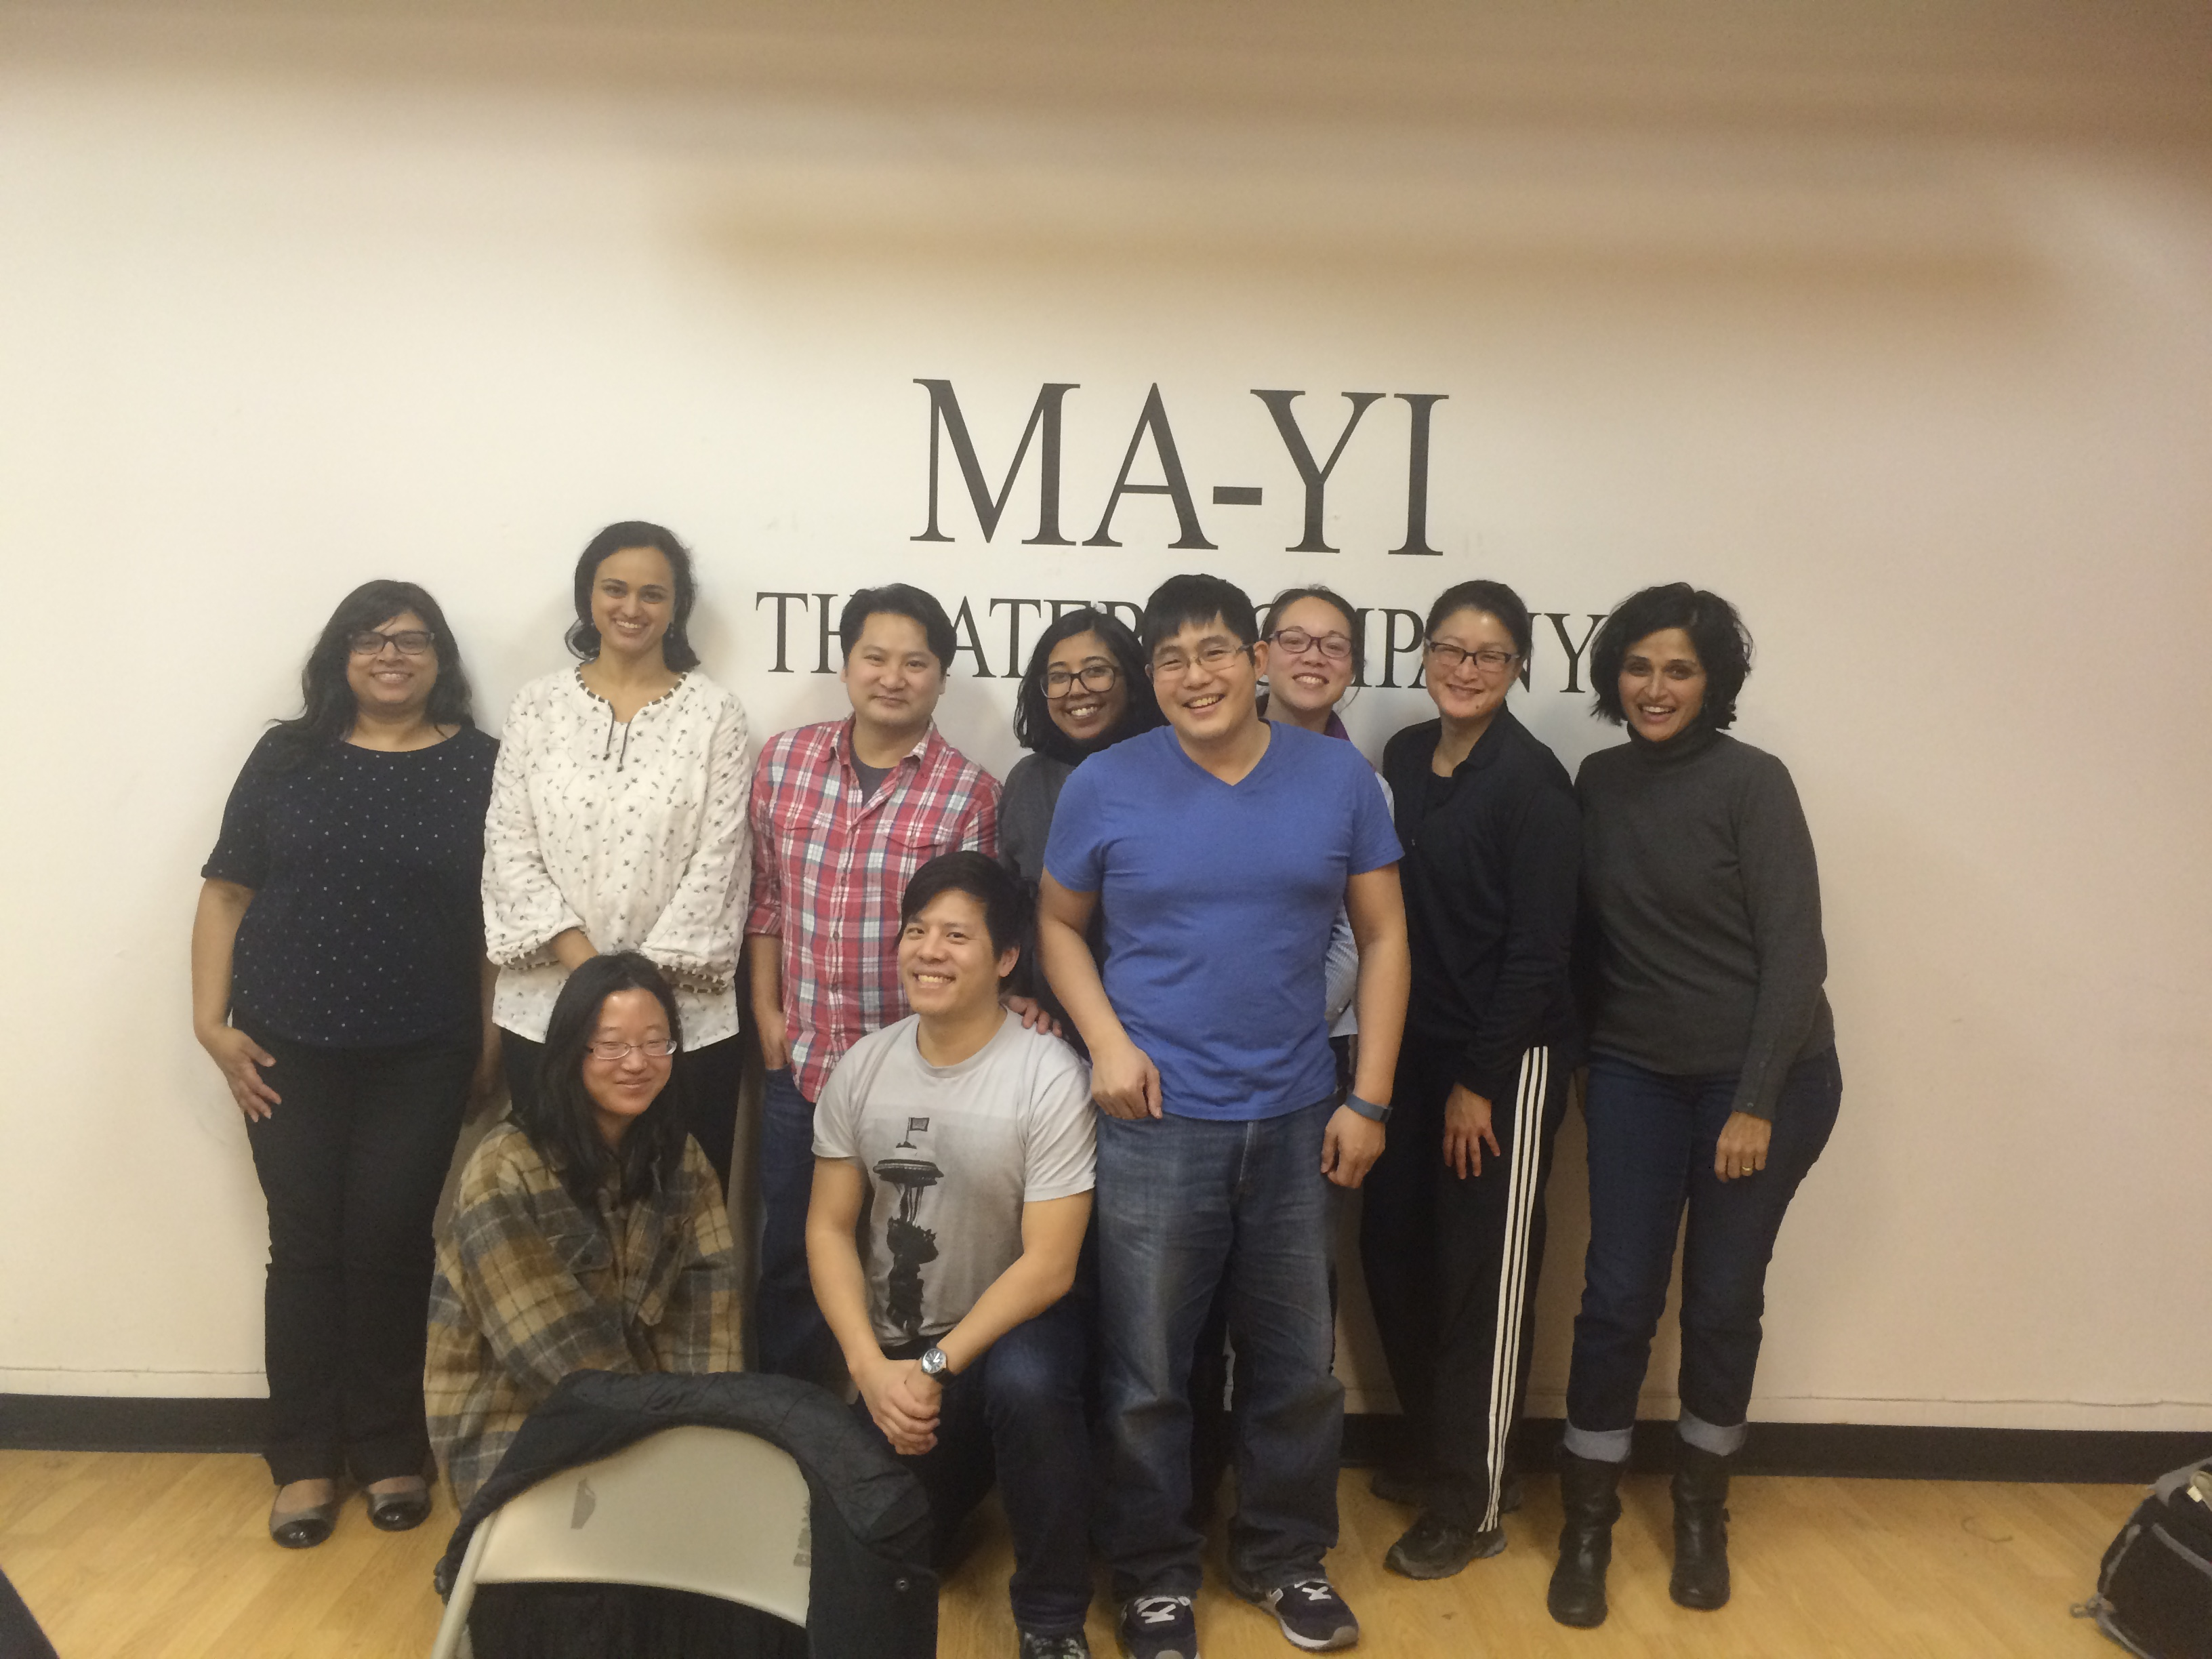 Ma-Yi Writers Group